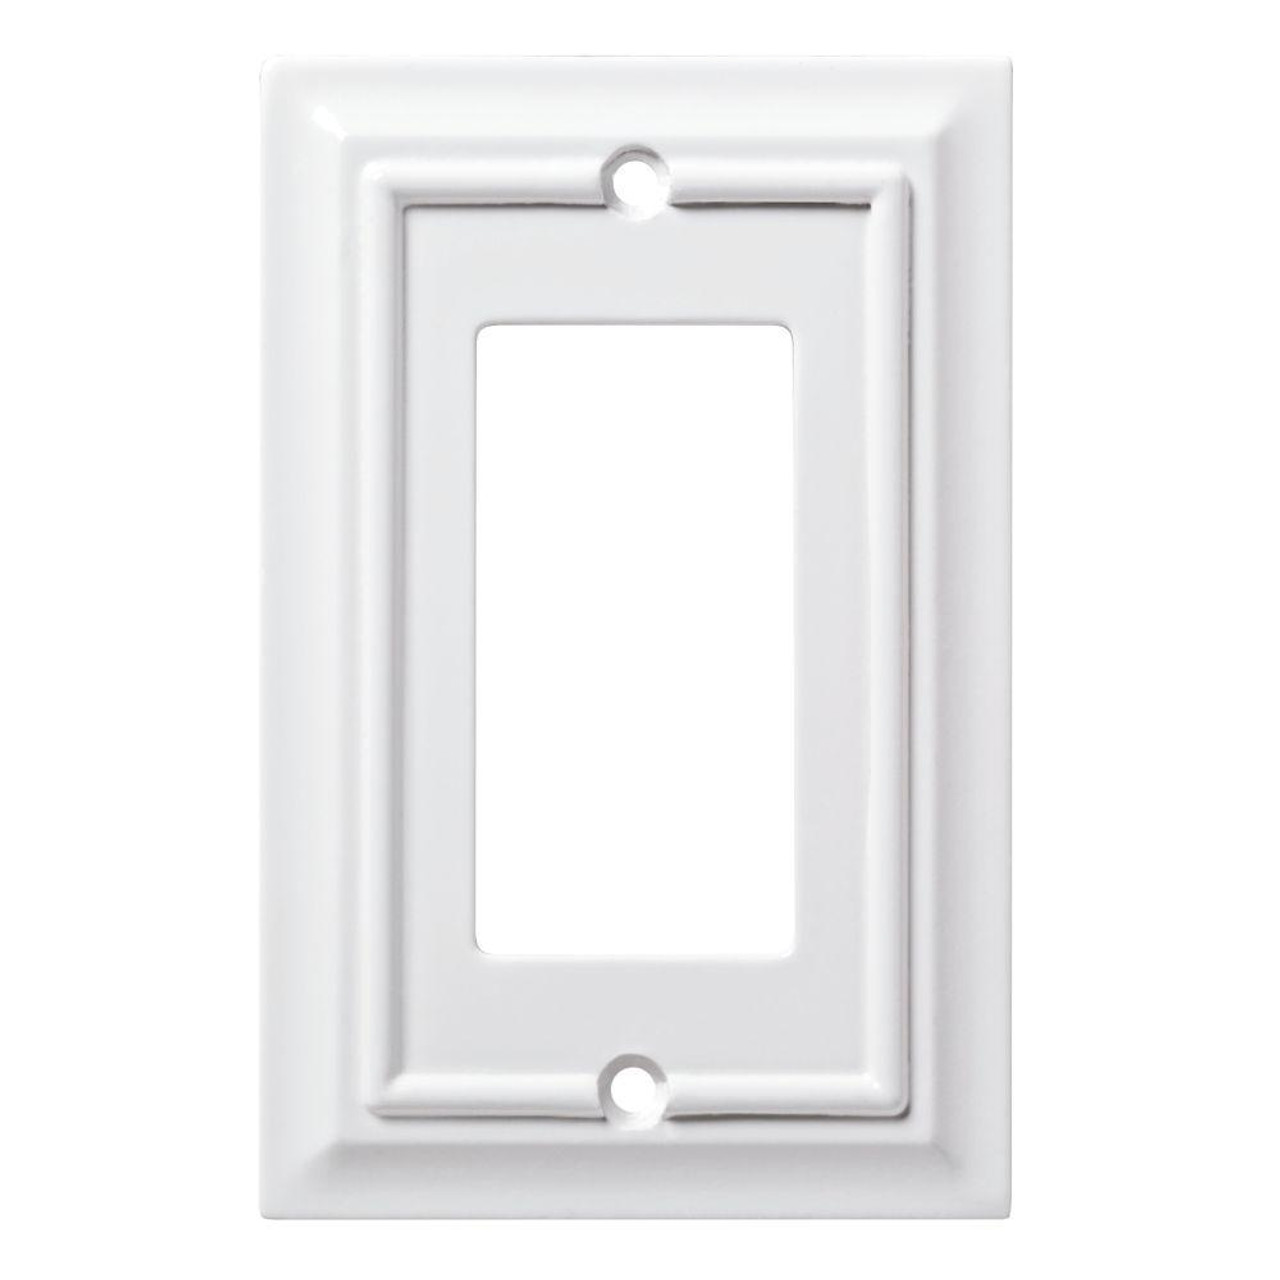 Hampton Bay W10768-W White Architect Single GFCI Decora Cover